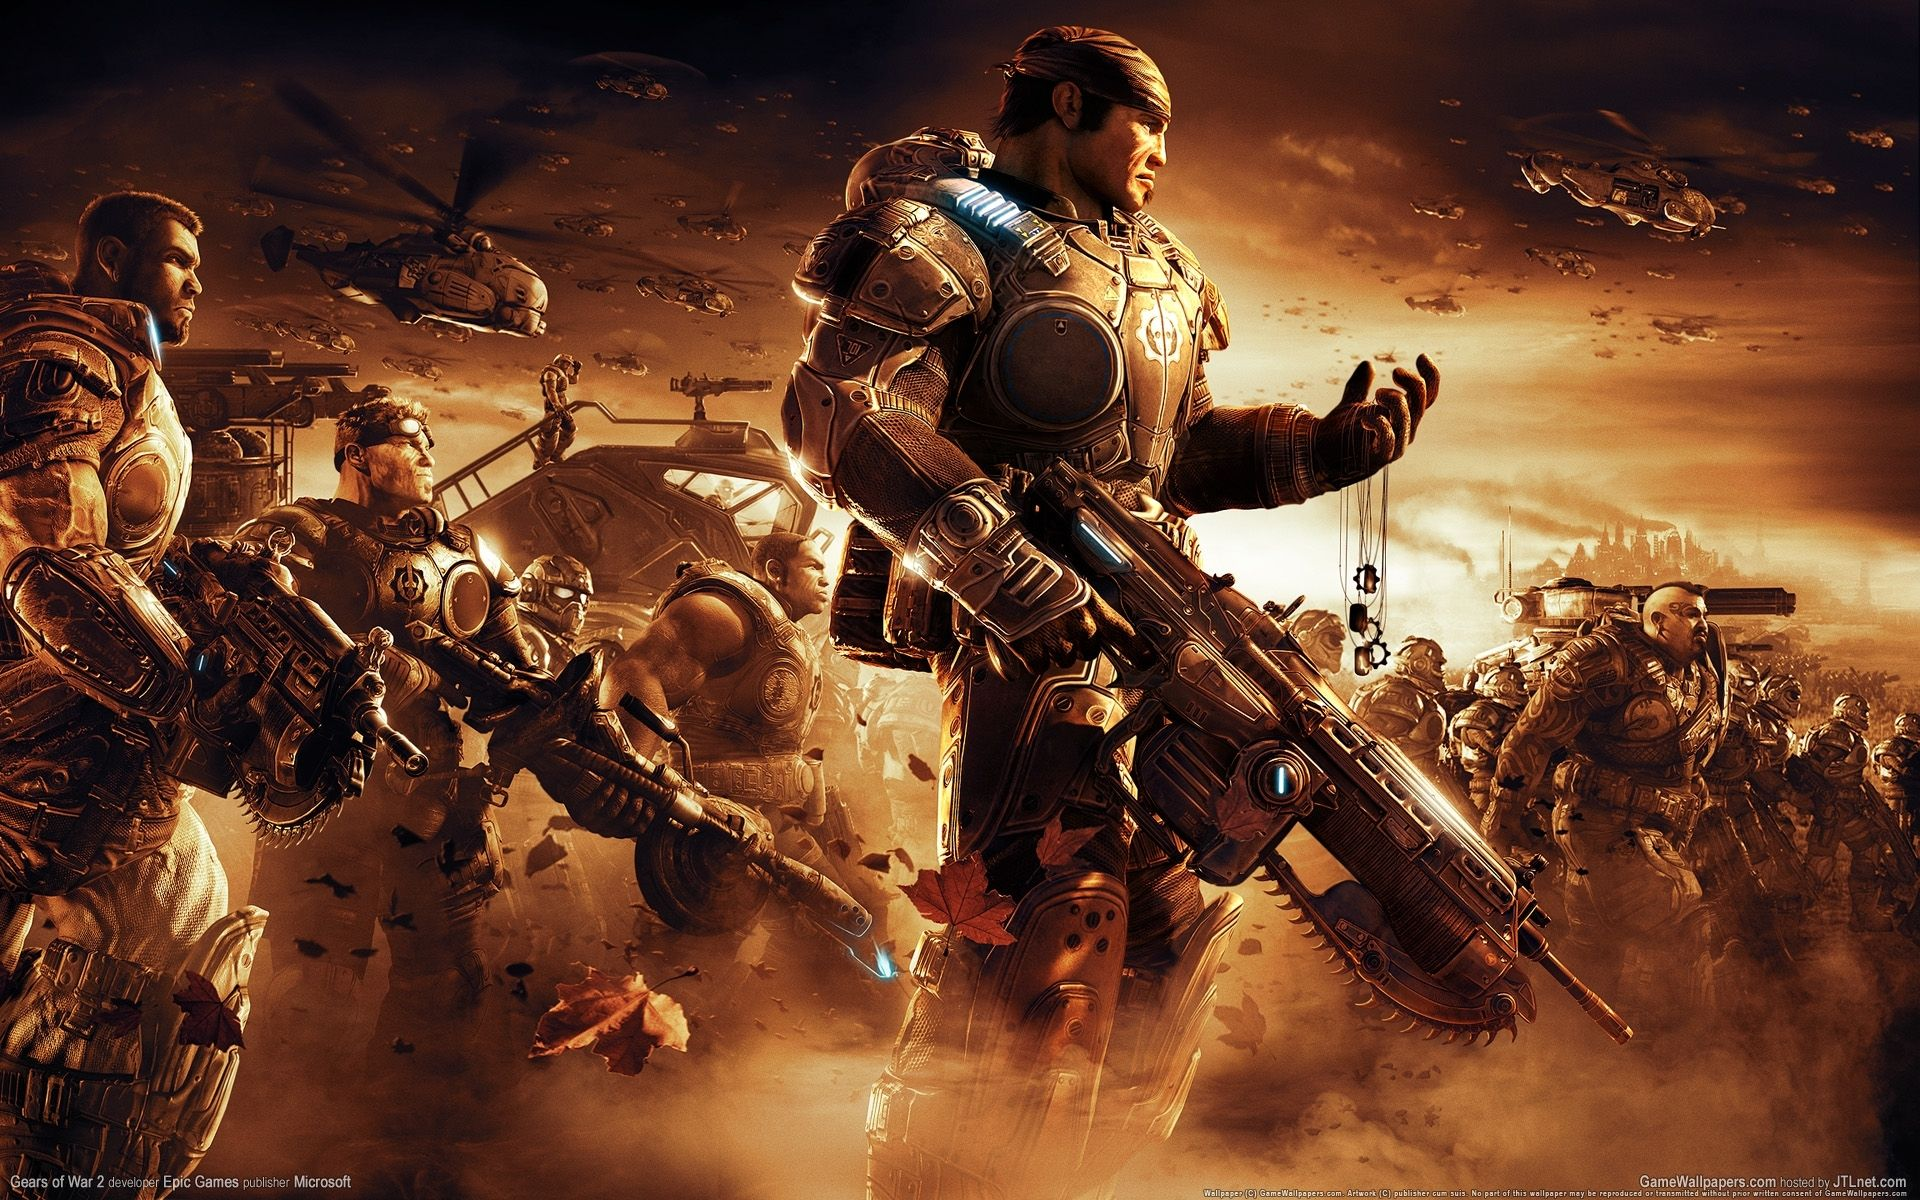 10 New Gears Of War 2 Wallpaper Full Hd 1920 1080 For Pc Desktop Gears Of War 3 Gears Of War Pantalla De Pc